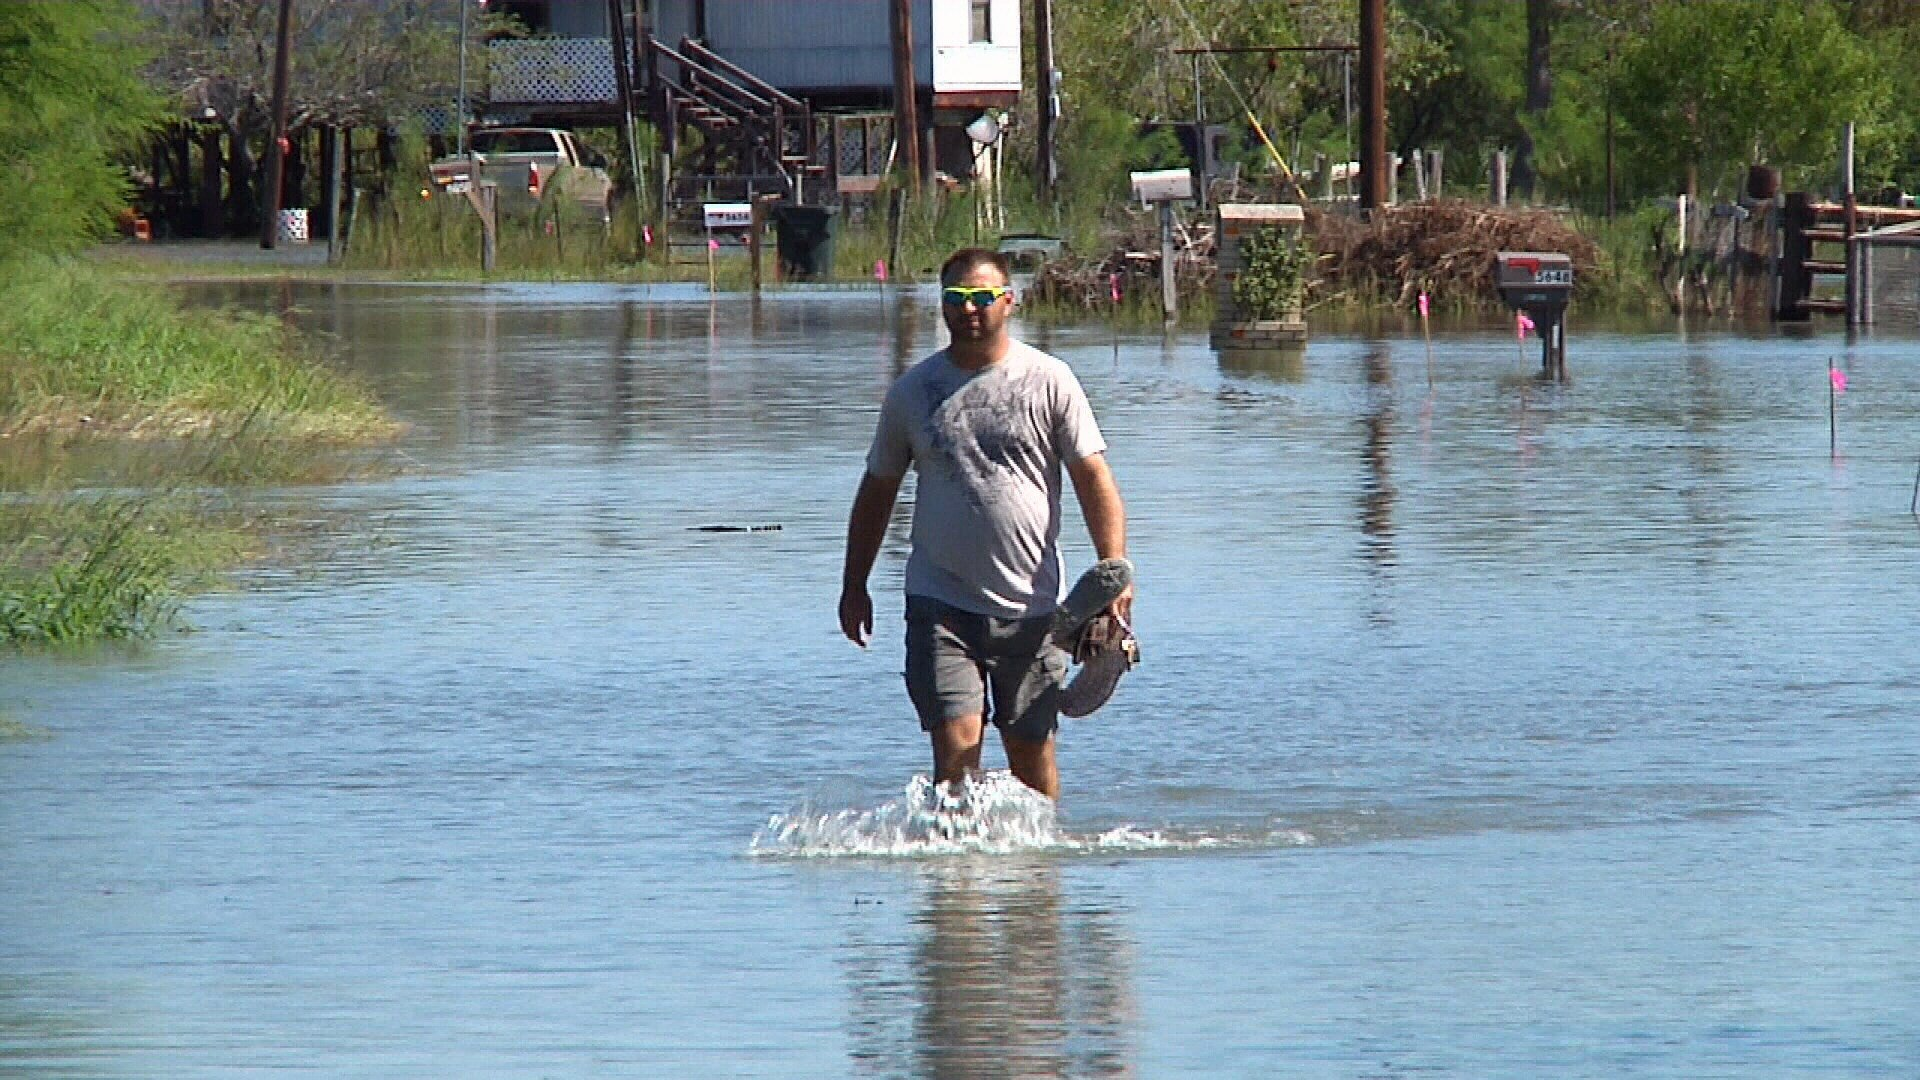 Homeowners near the Nueces River are dealing with the fifth day of flooding as water is released from the Wesley Seale Dam.